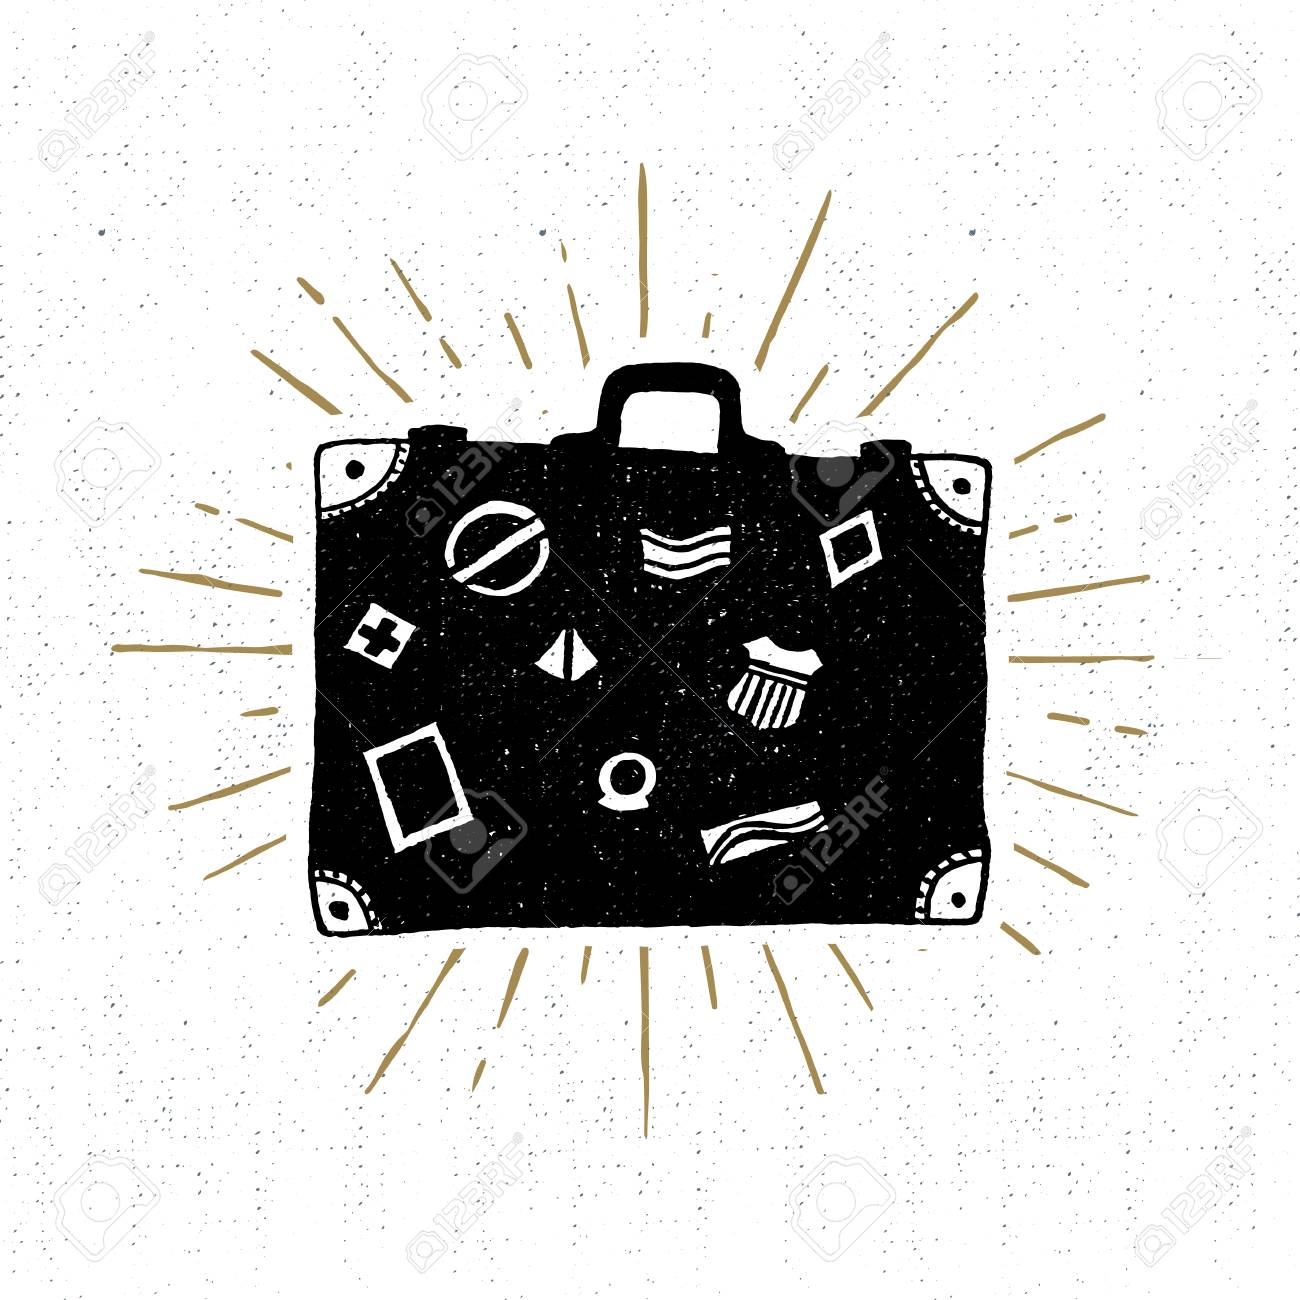 Hand drawn vintage icon with suitcase vector illustration. - 53285735